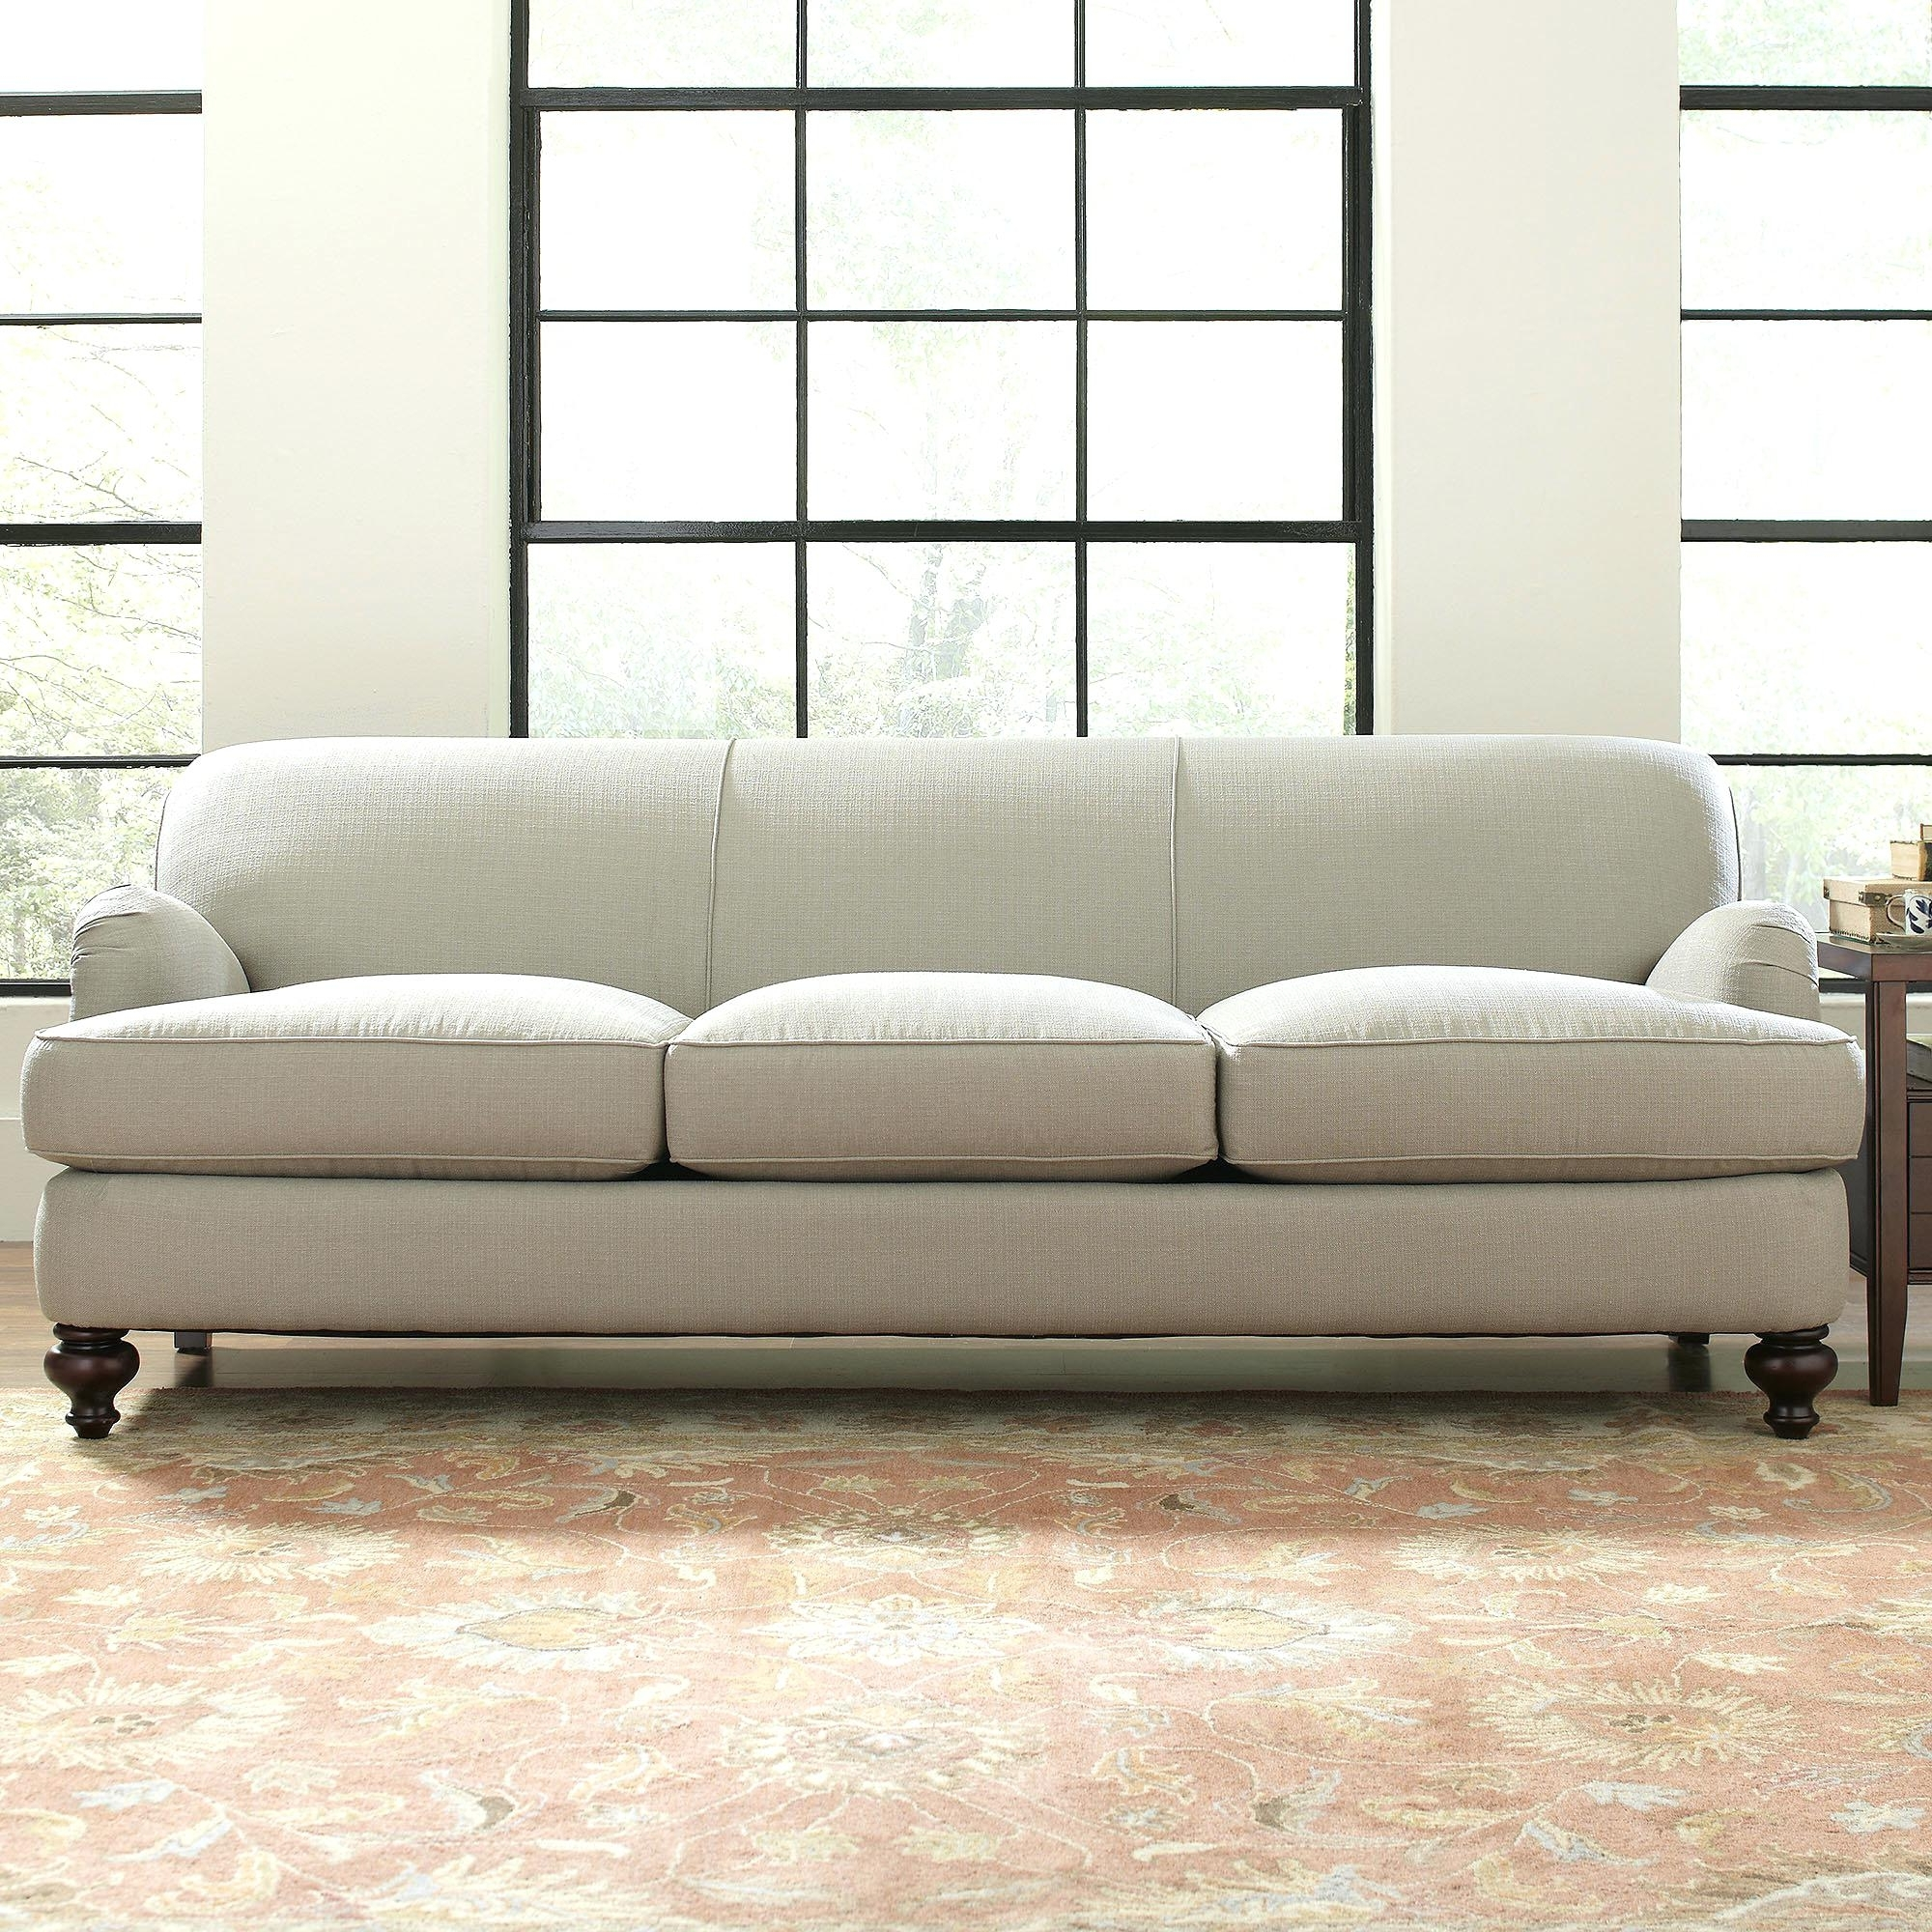 Recent Durham Region Sectional Sofas Throughout Durham Furniture Stores Raleigh Region Ontario Used (View 7 of 15)